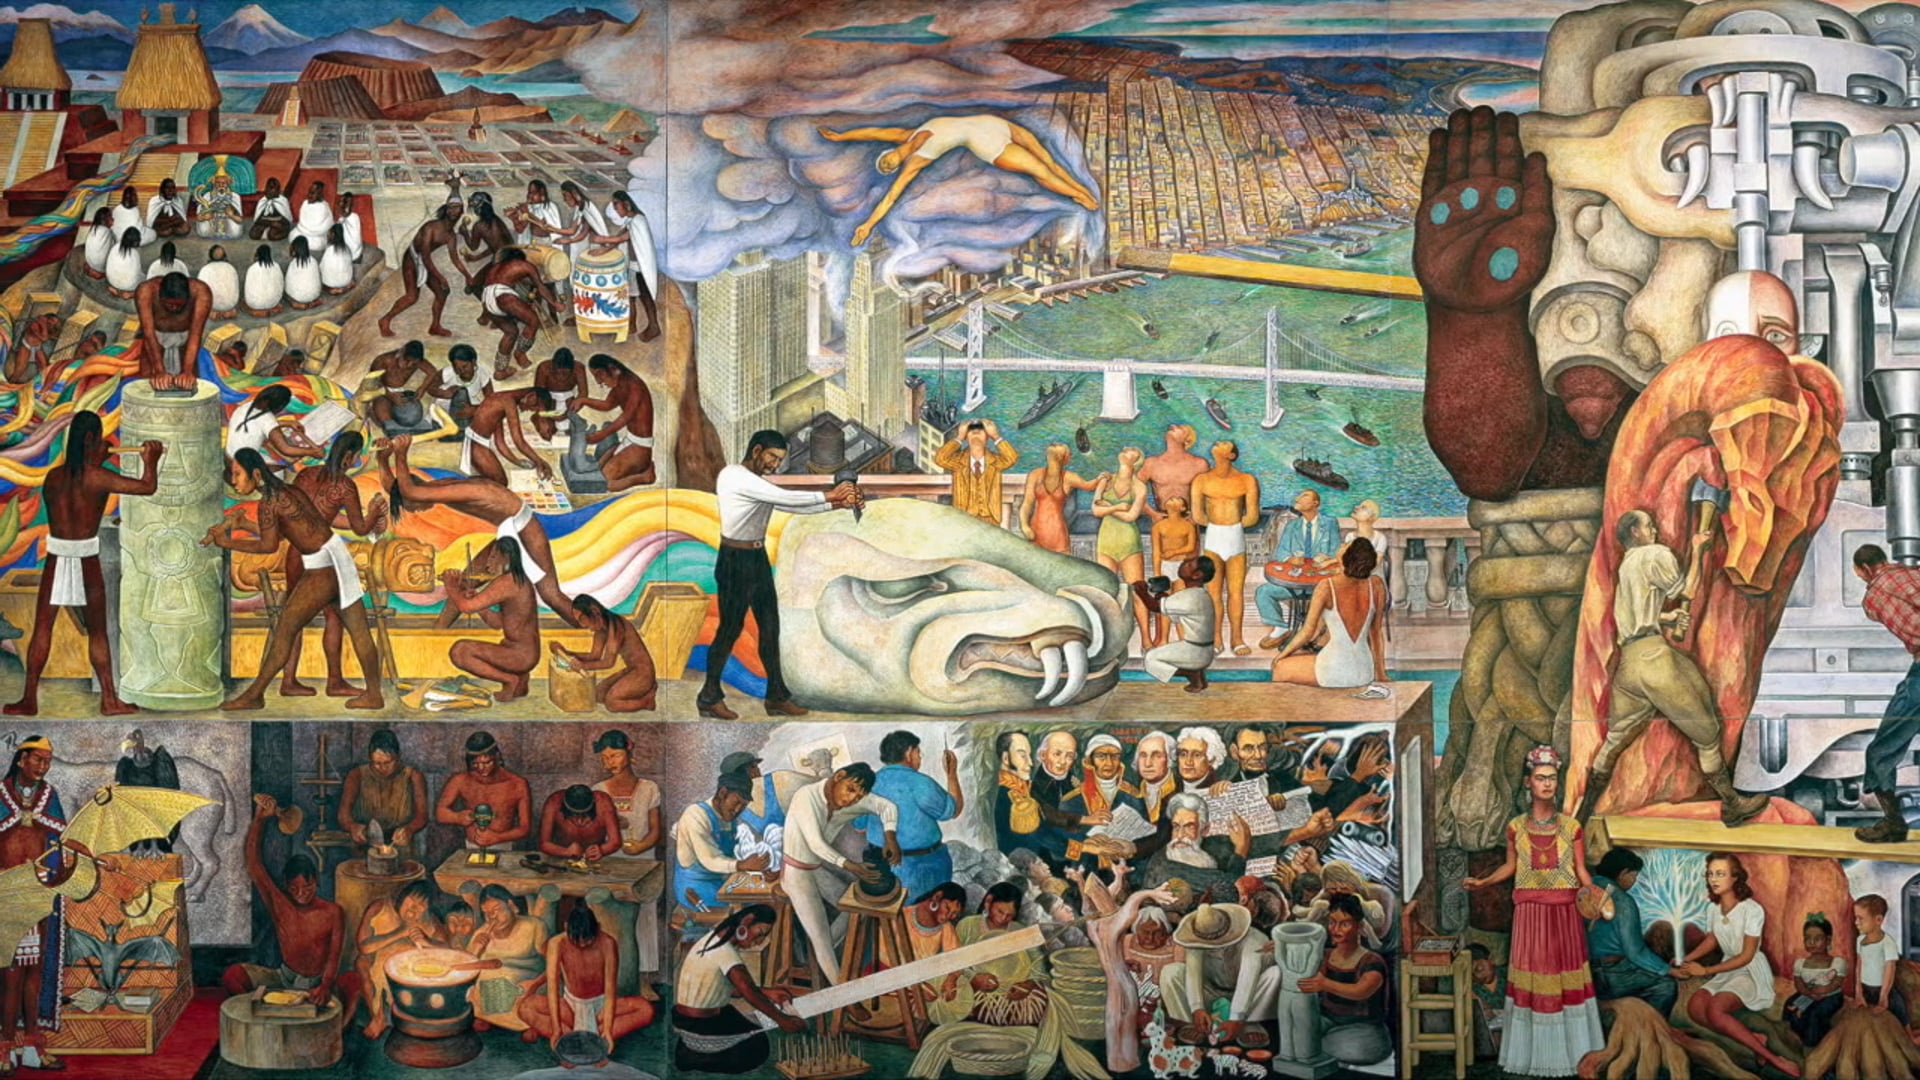 Pan American Unity Mural by Diego Rivera (Official Documentary)